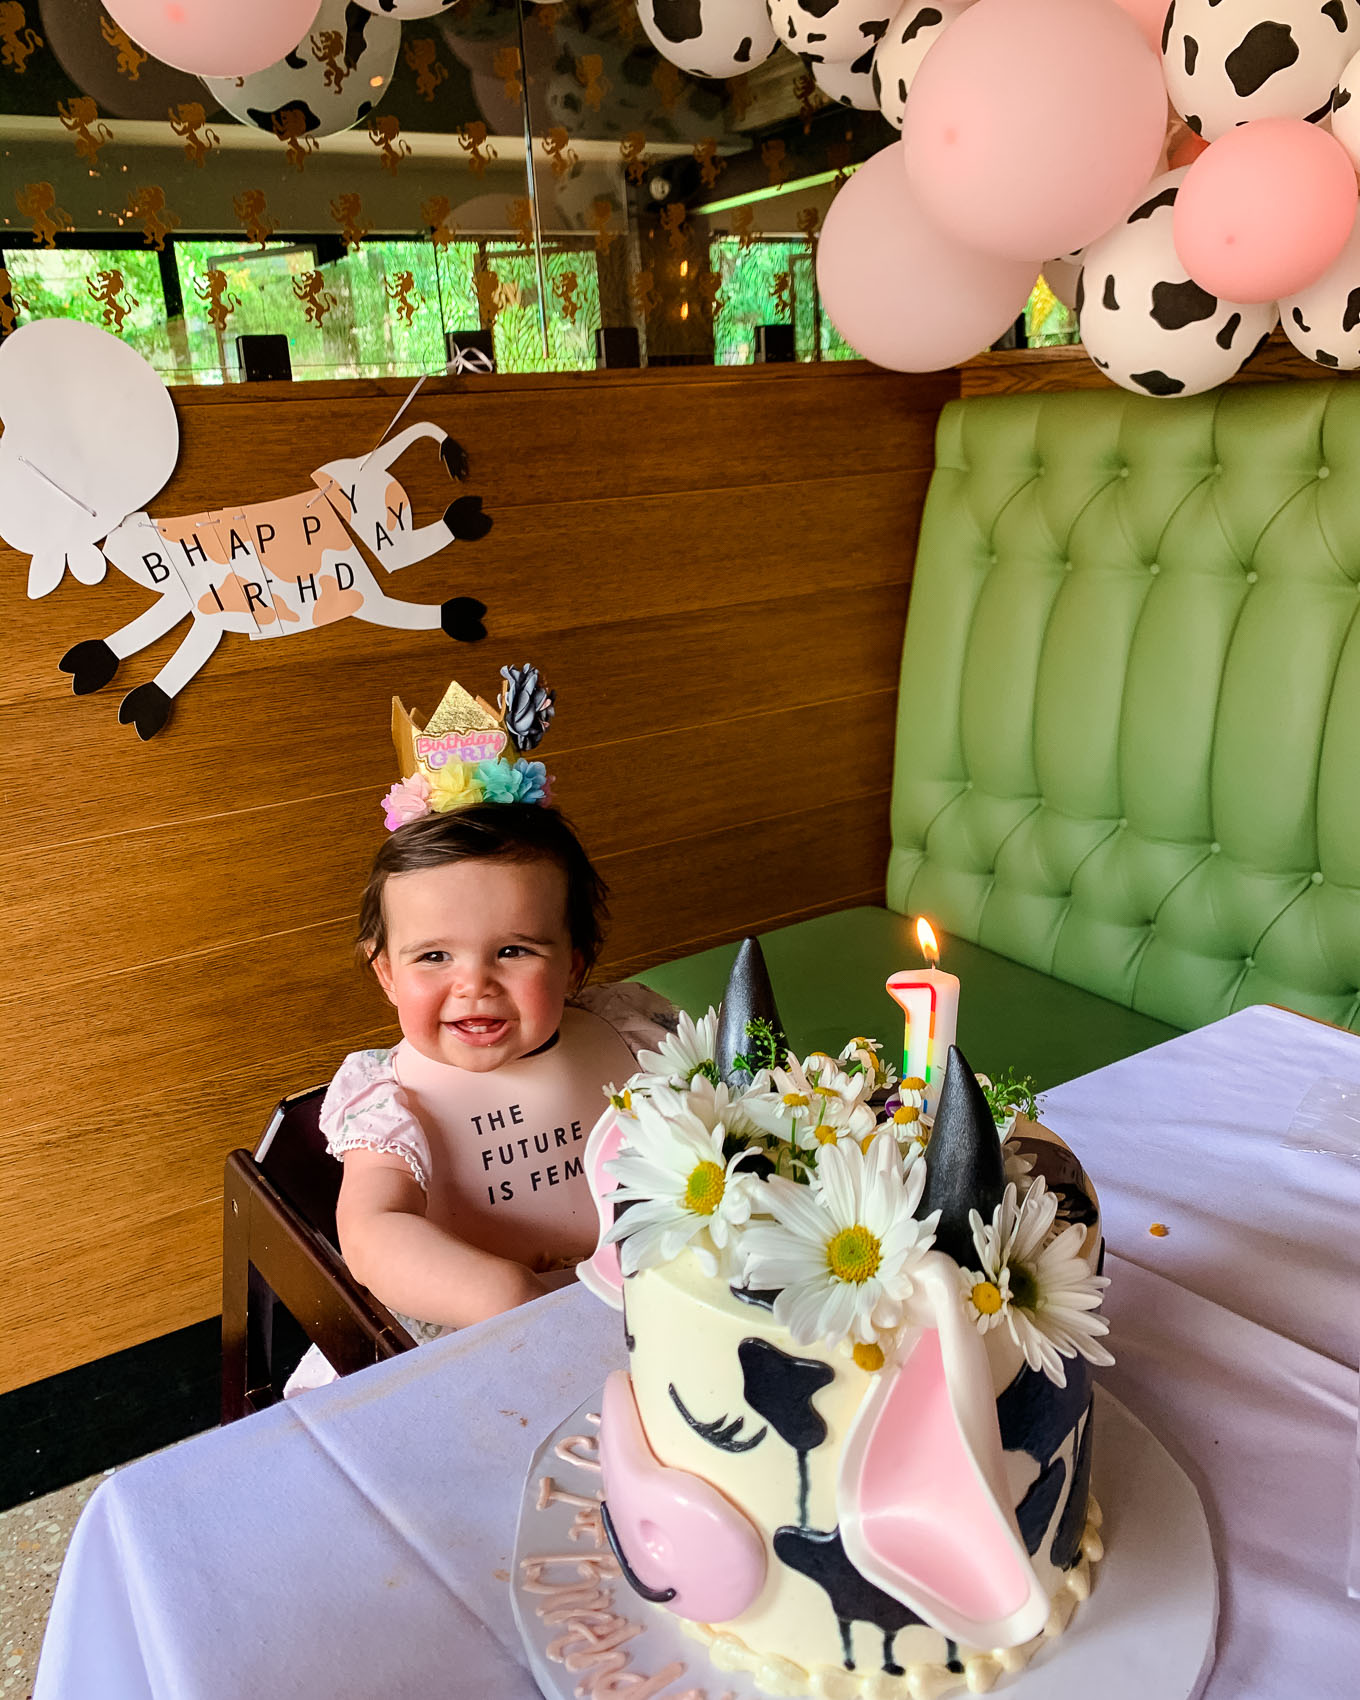 1st Birthday by popular Chicago lifestyle blog, Glass of Glam: image of a 1 year old baby girl wearing a birthday crown head band, the future is female bib, and sitting in a high chair next to a Amazon QIYNAO White and Blacke Dairy Cow Happy Birthday Banner, Amazon Finypa Funny Cow Party Decorations Balloon 85pcs Arch Garland, and ECGB Cake Studio cow birthday cake.